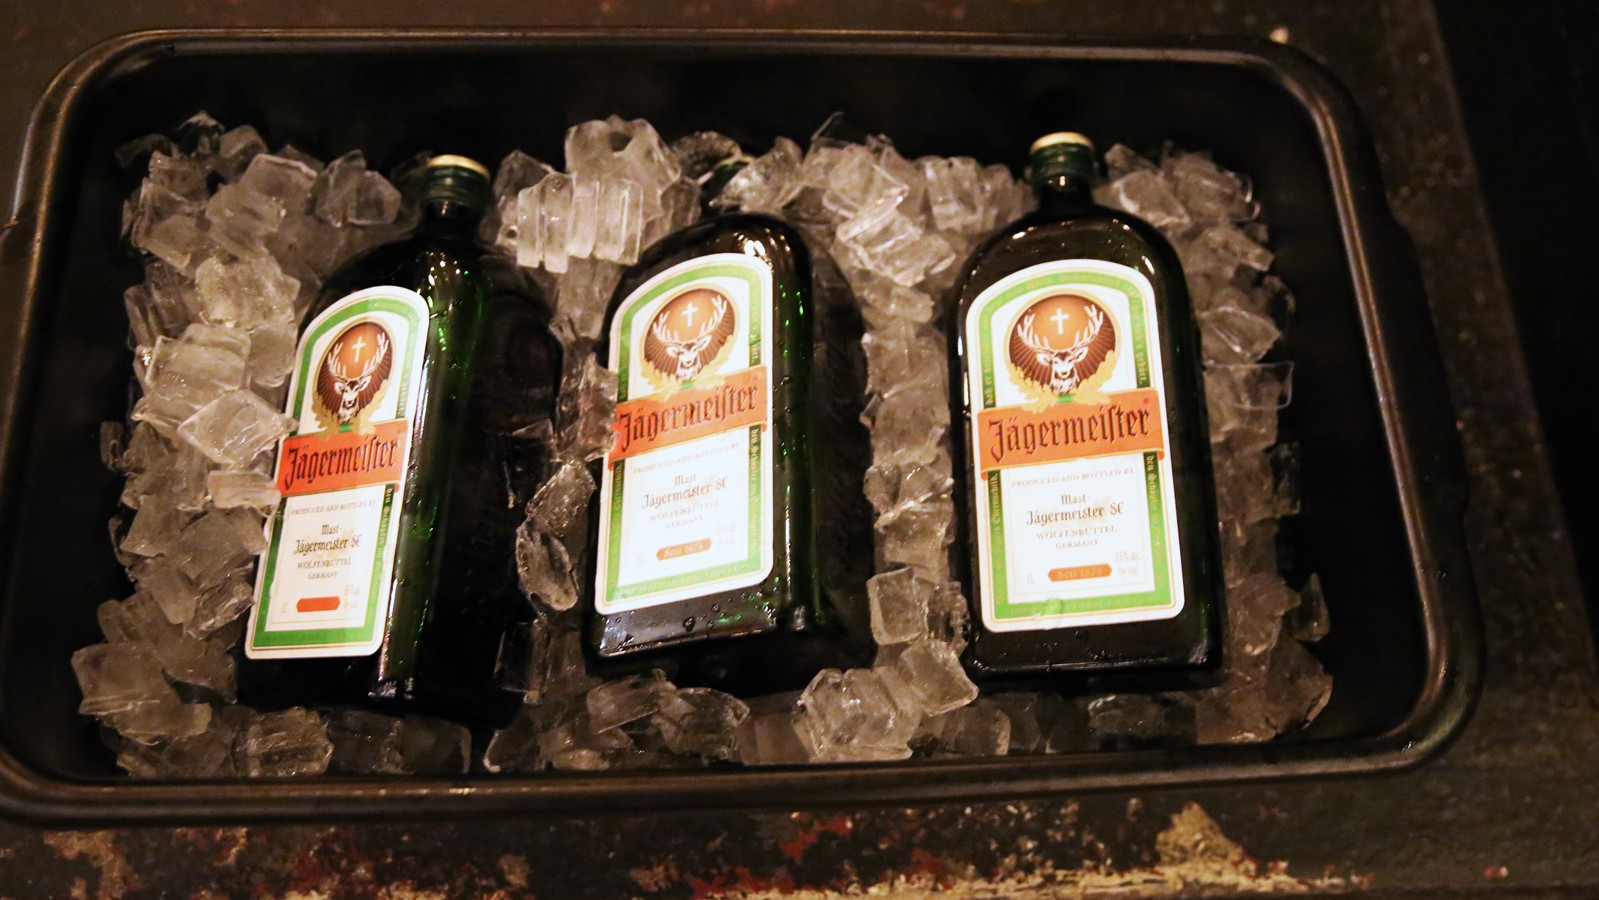 A Jägermeister History Lesson in Germany